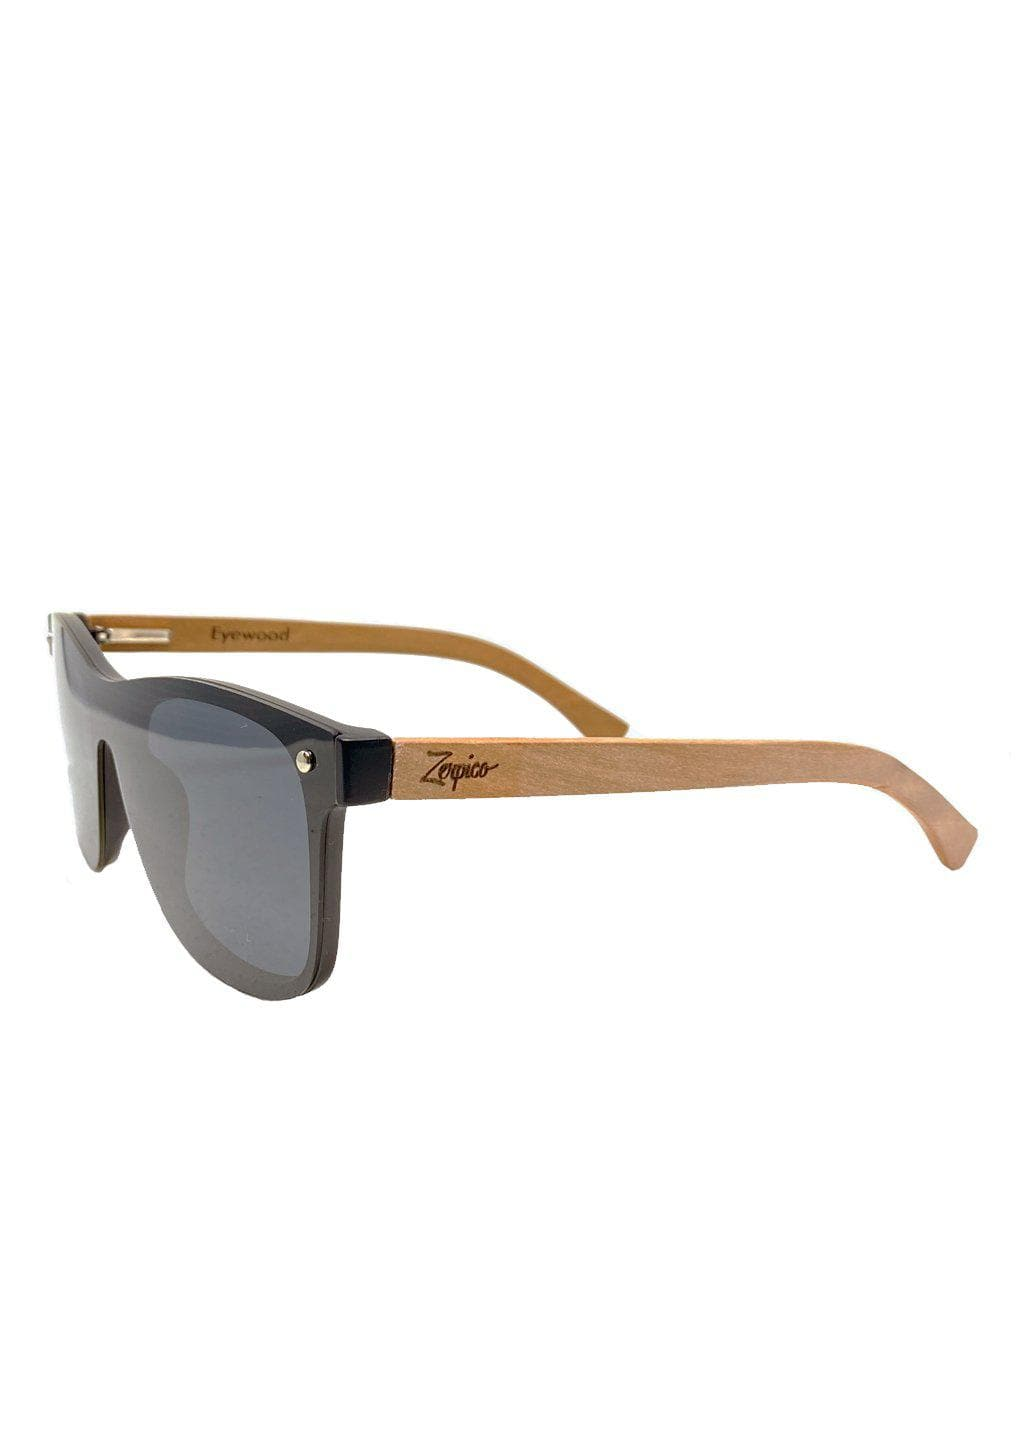 Eyewood tomorrow is our modern cool take on classic models. This is Taurus with black lenses. Nice wooden sunglasses. From the side.